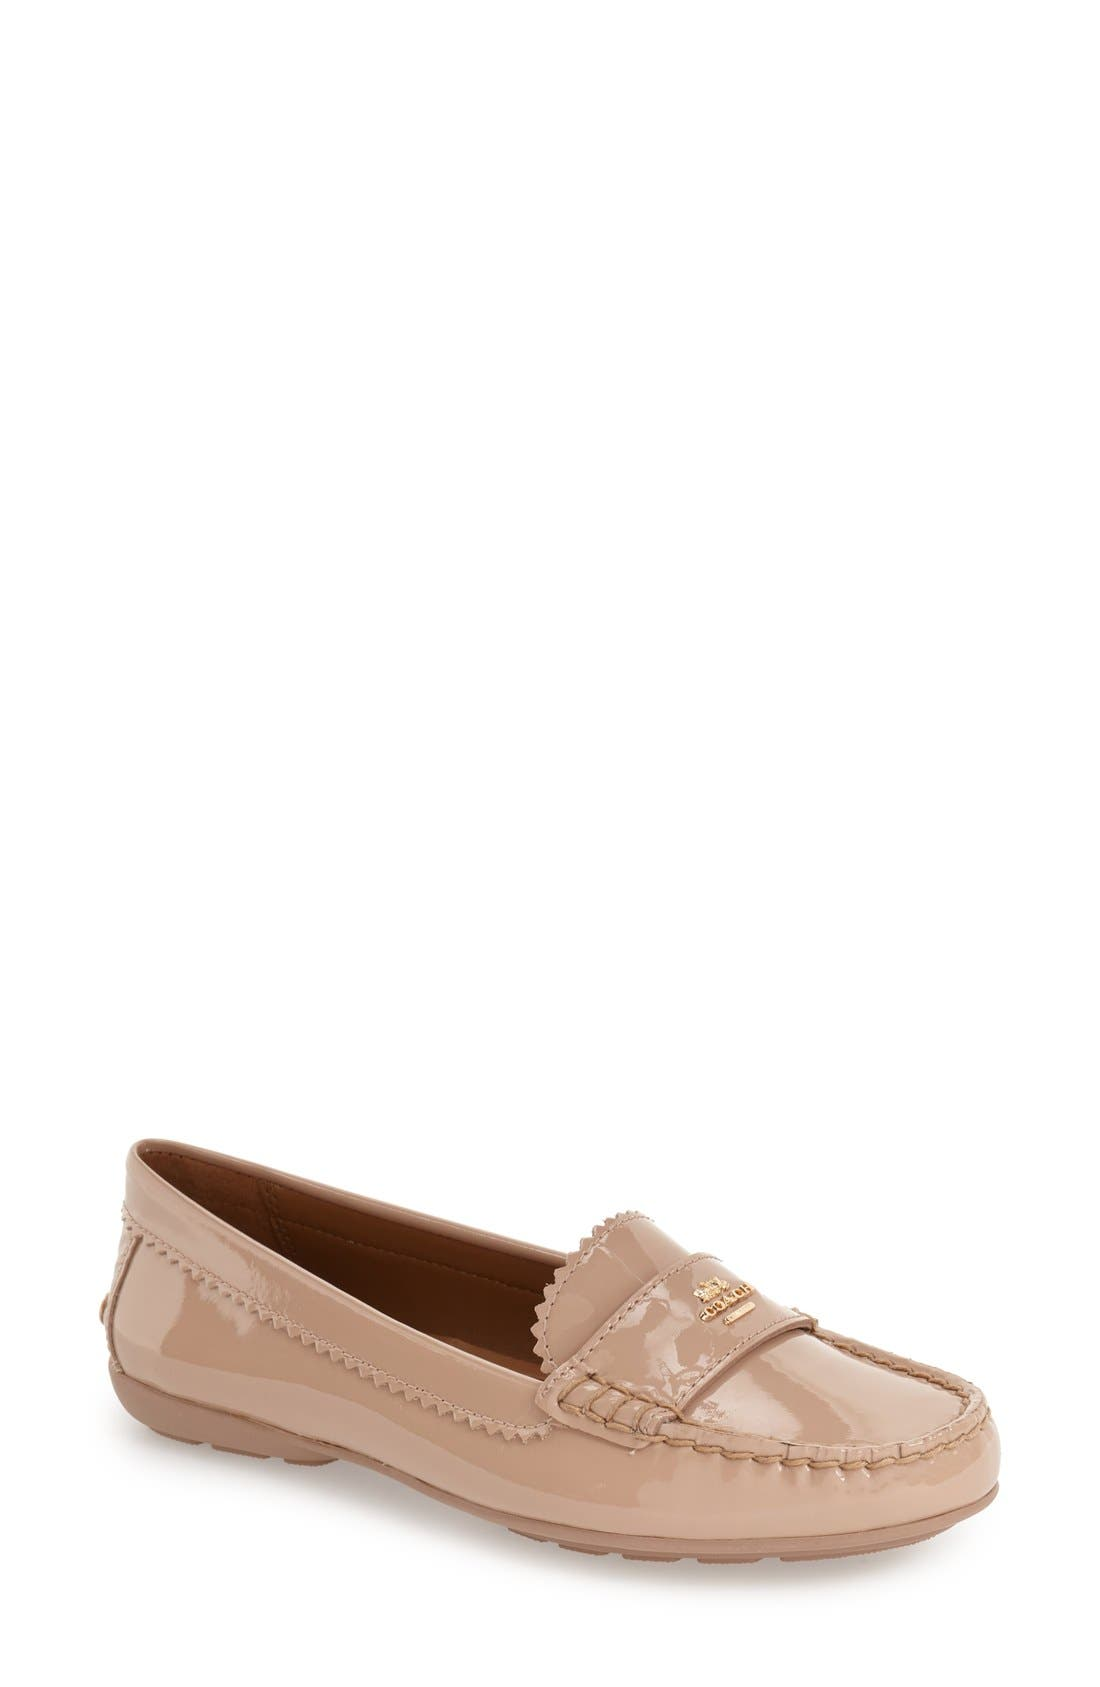 COACH 'Odette' Moccasin Loafer